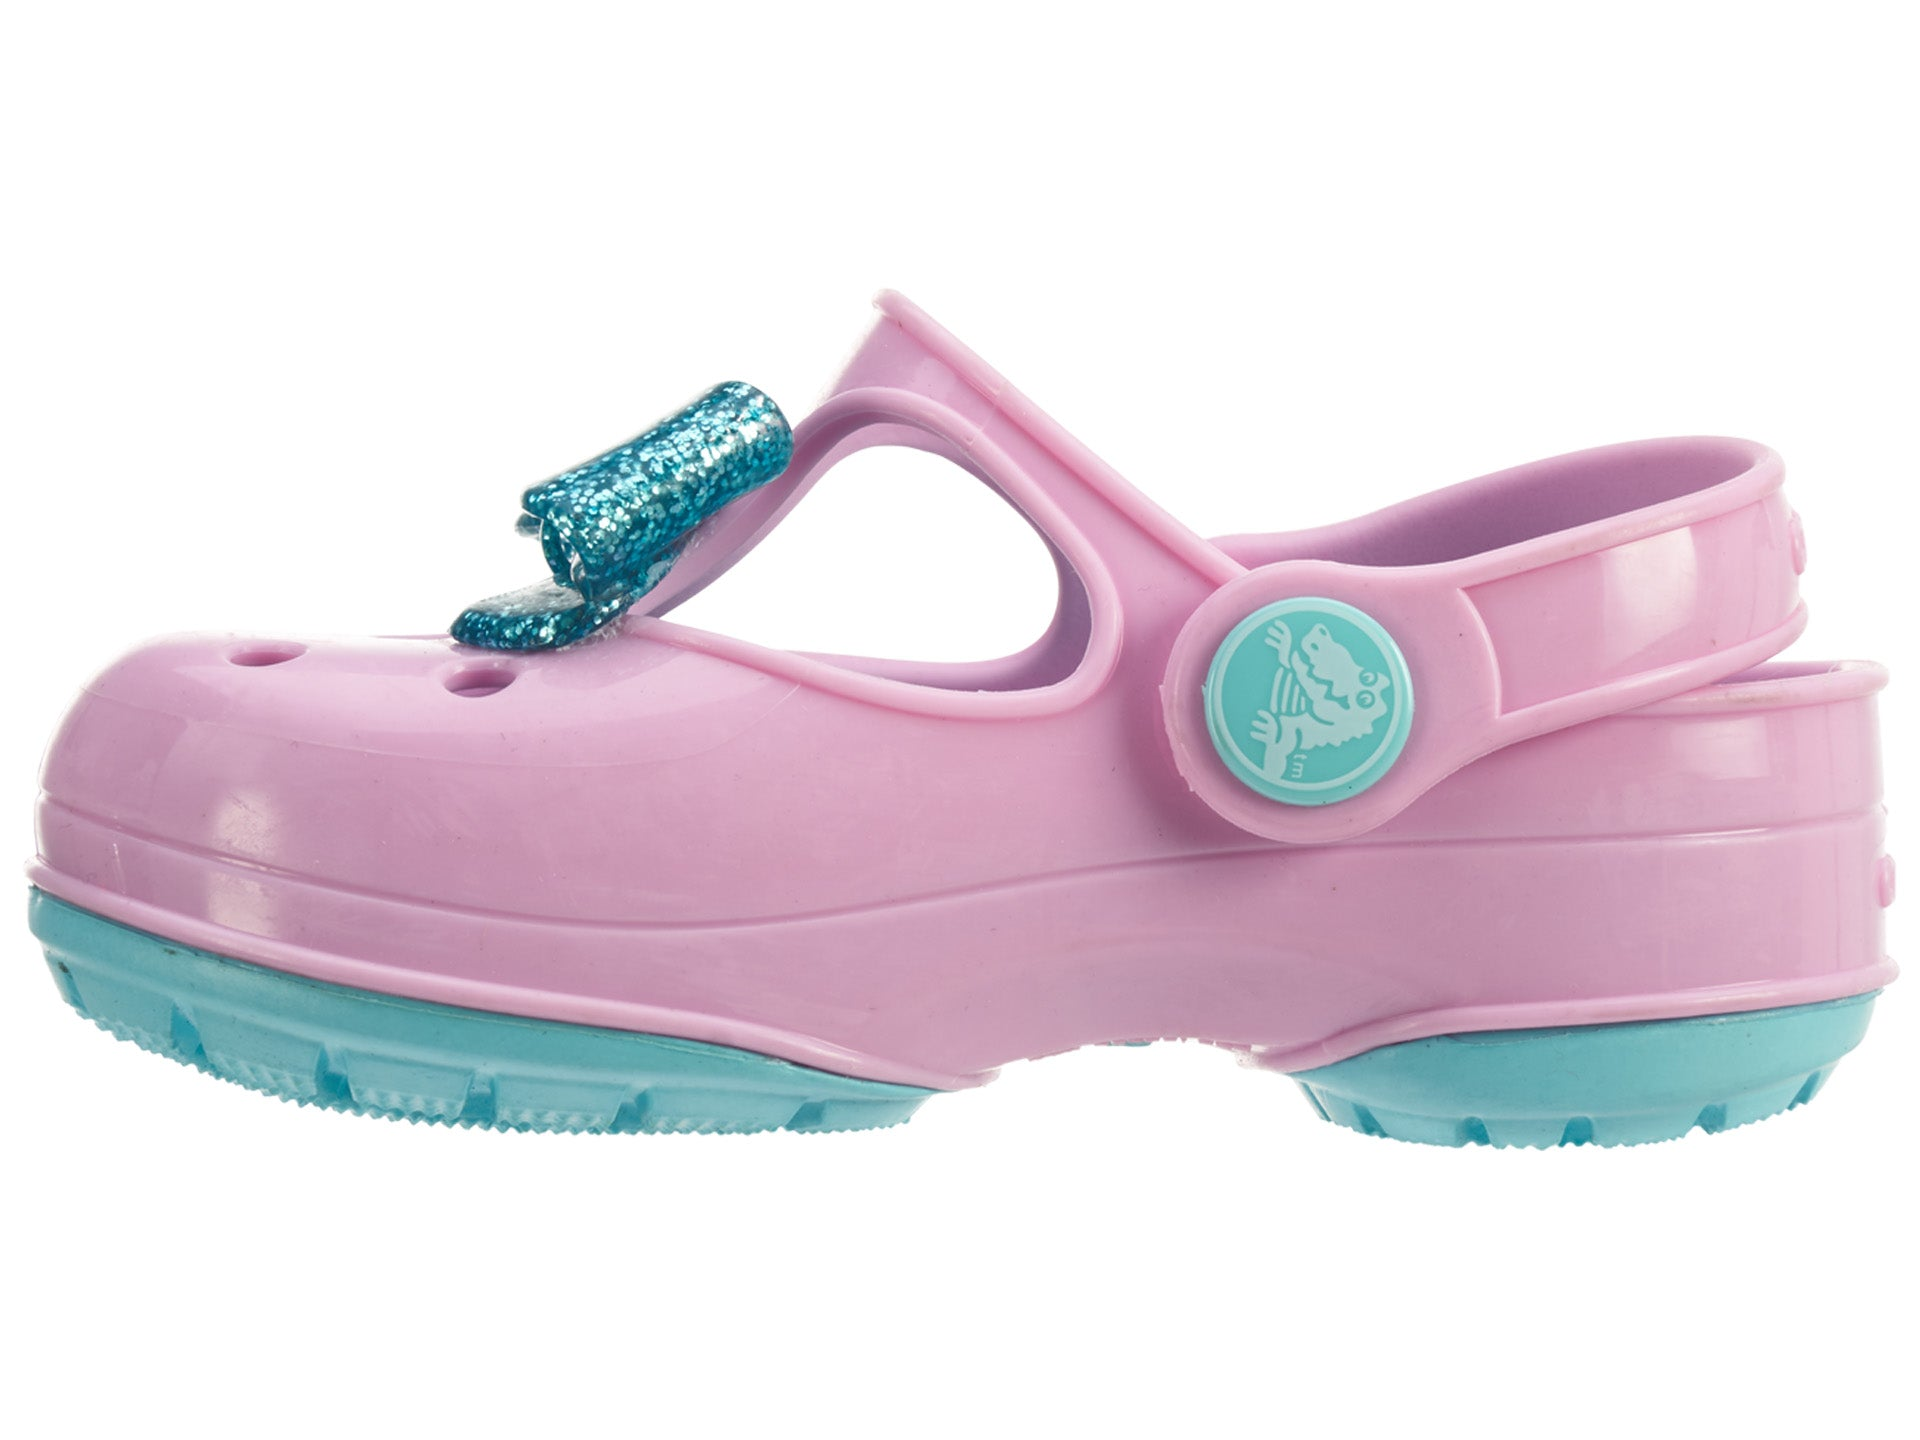 c5842f6d820cd0 Crocs Carlie Gltter Bow Mj Ps Toddlers Style   203452. CROCS   Baby    Toddler Shoes